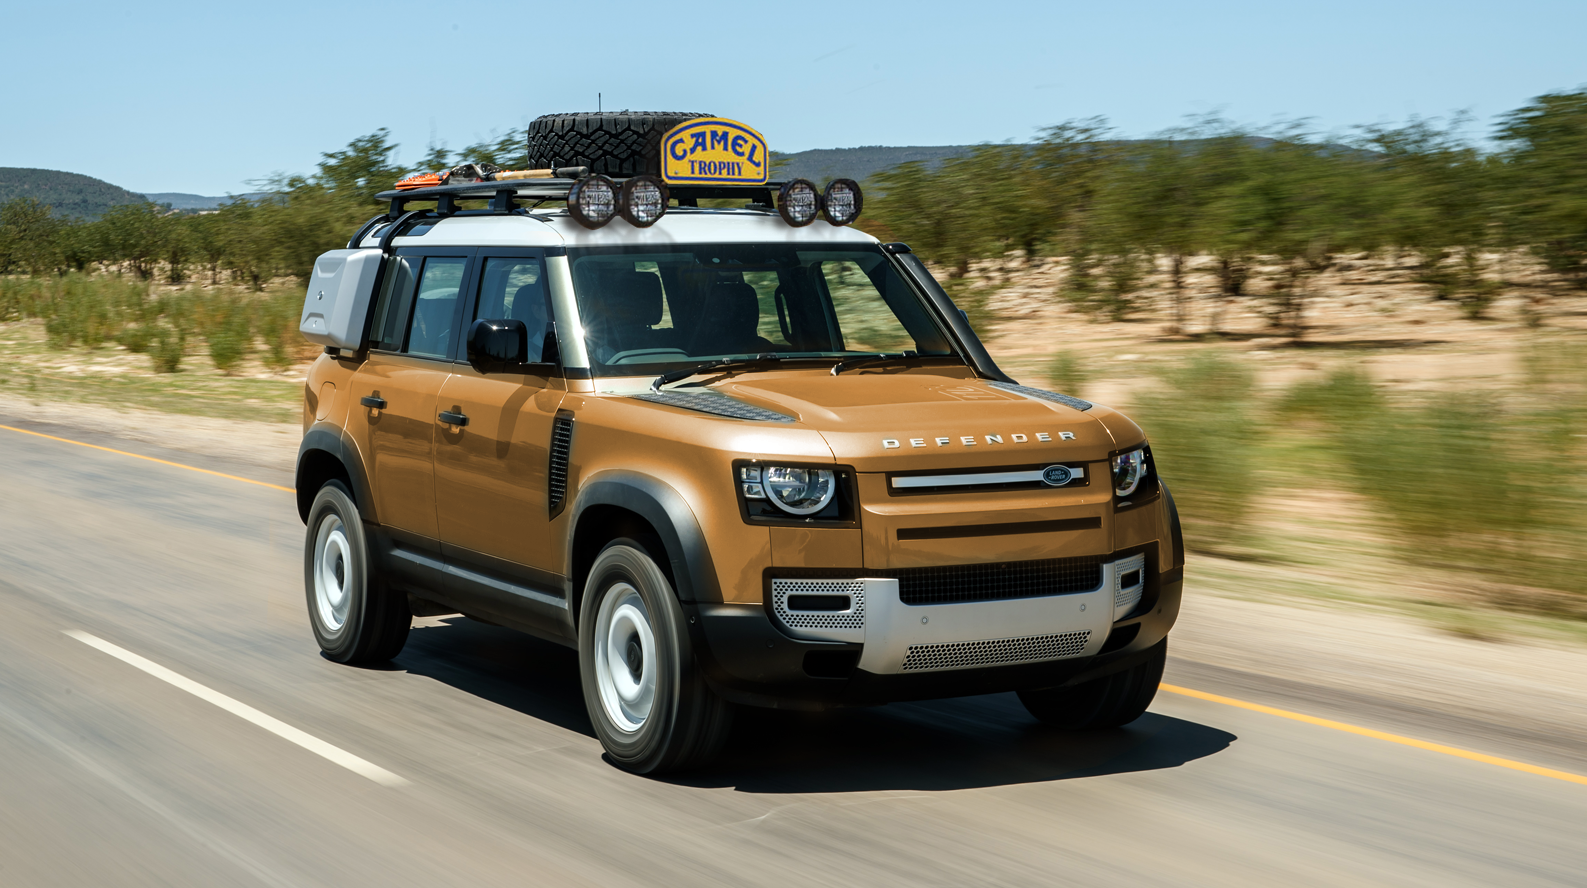 Here's What The 2020 Land Rover Defender Camel Trophy Could Look Like